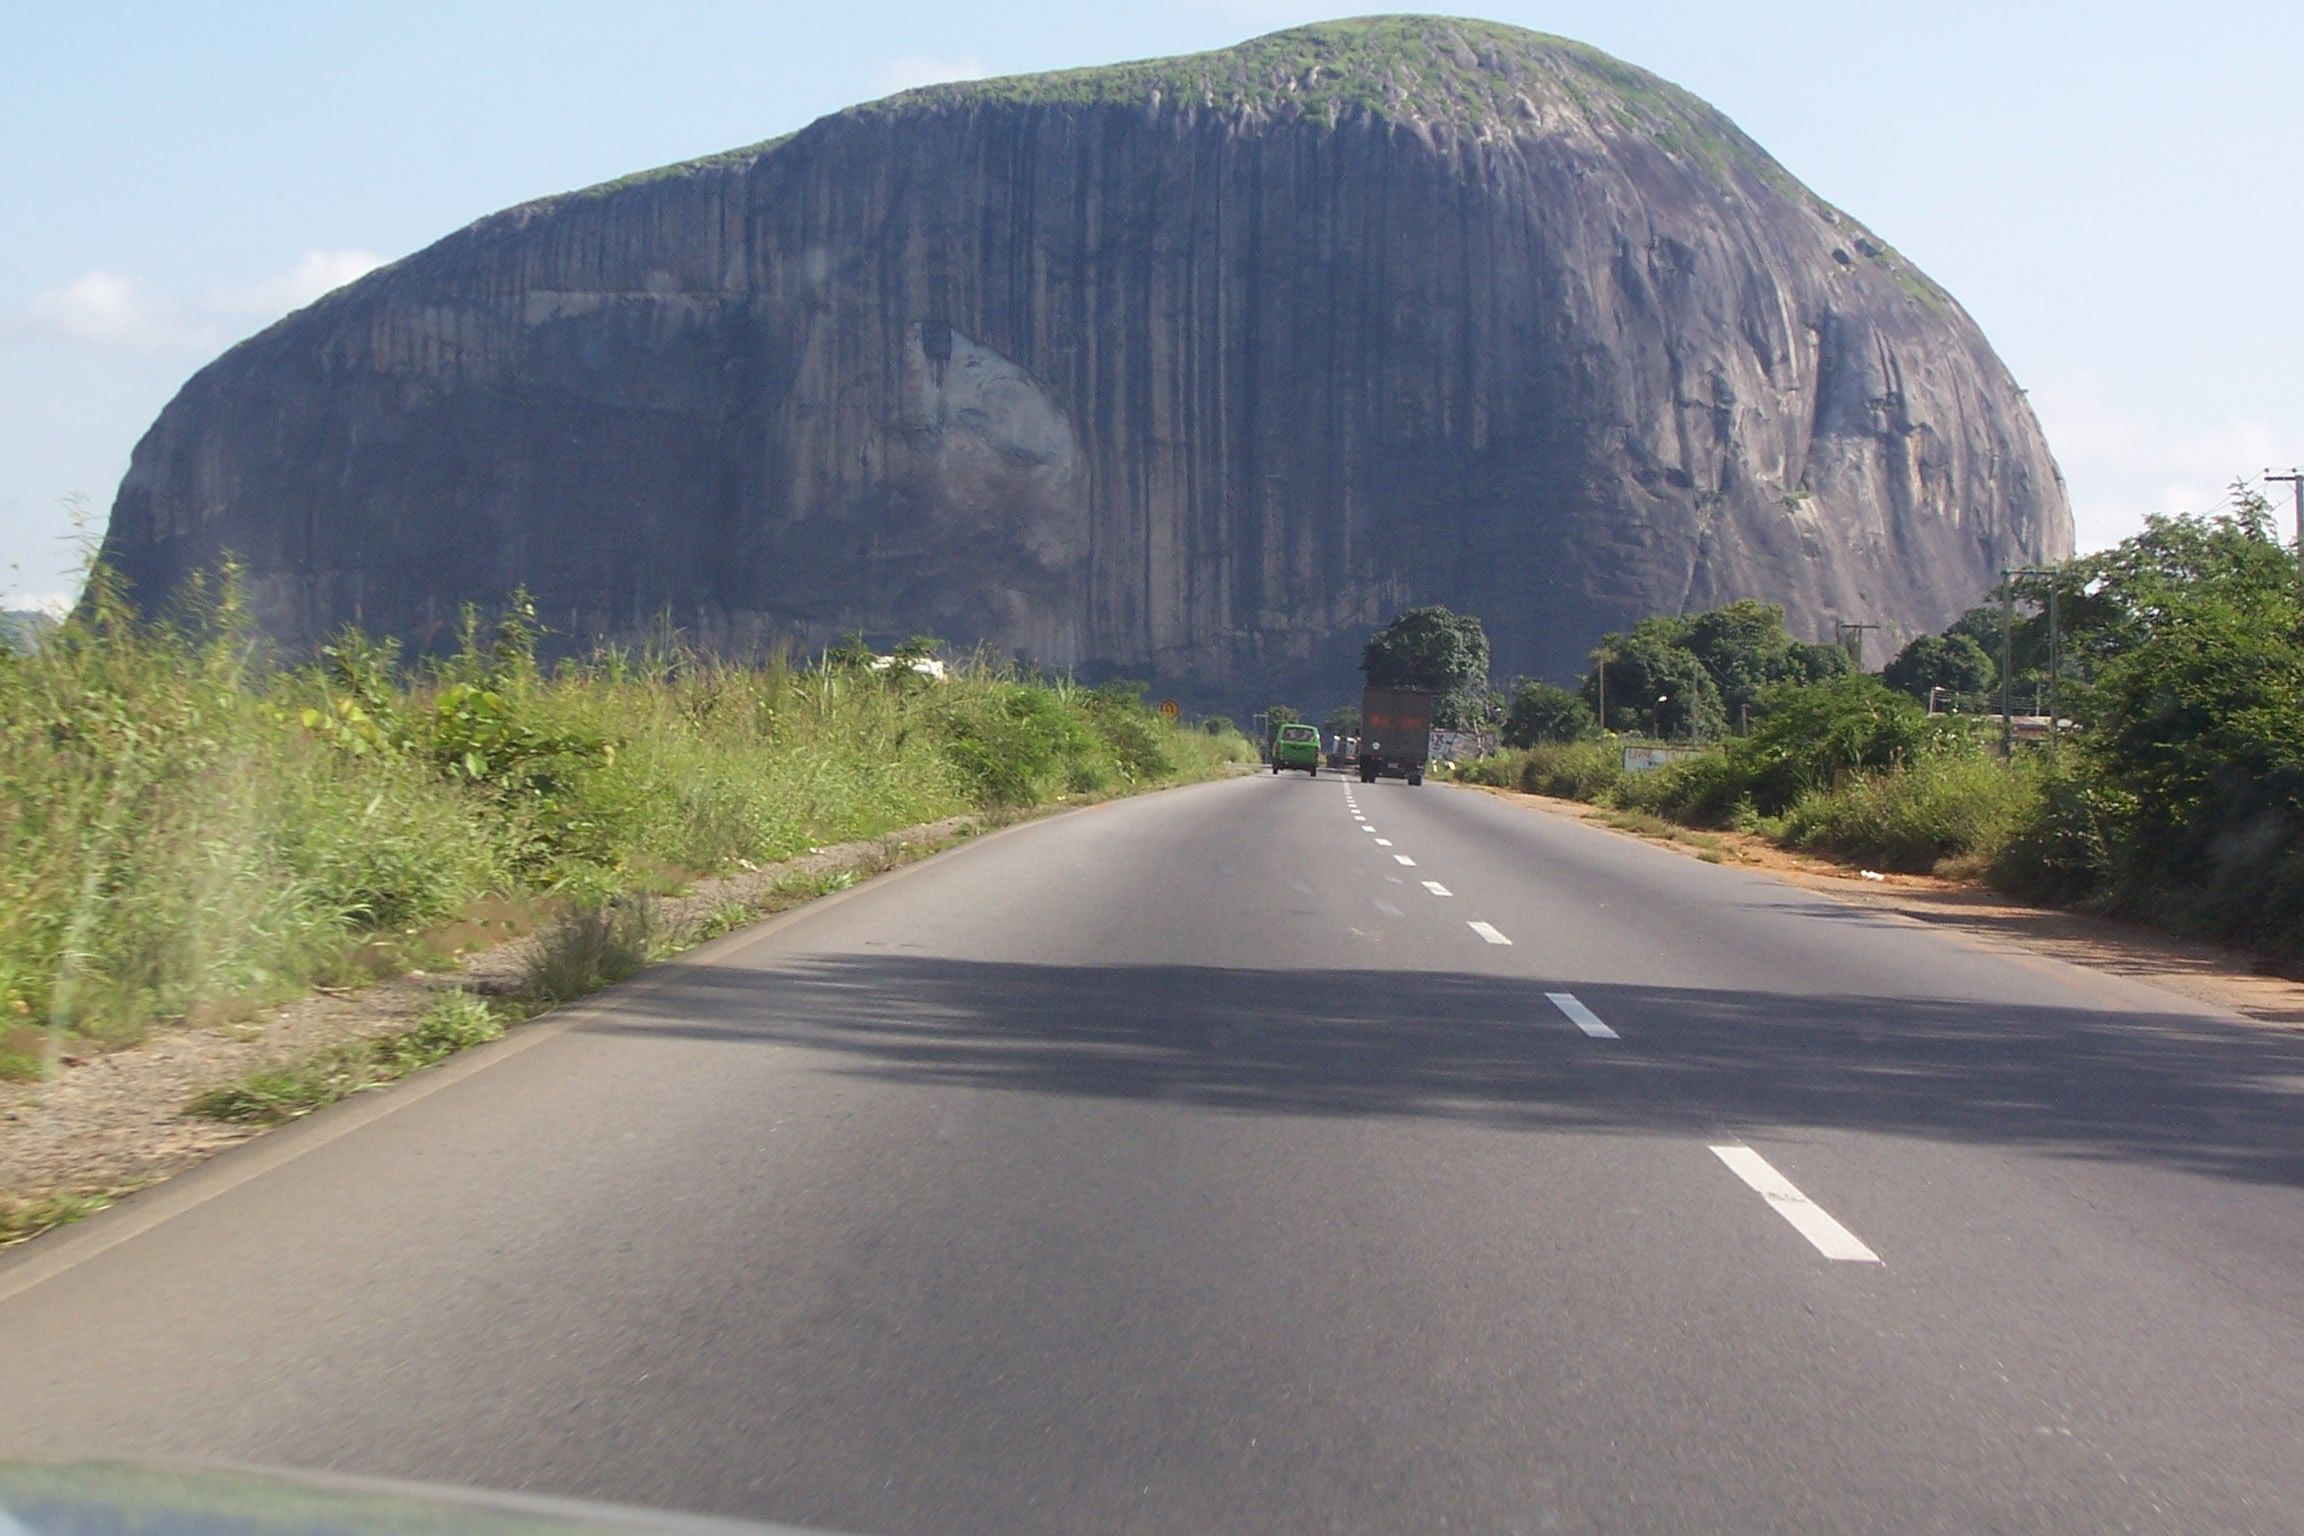 Marvel at the Giant Aso rock